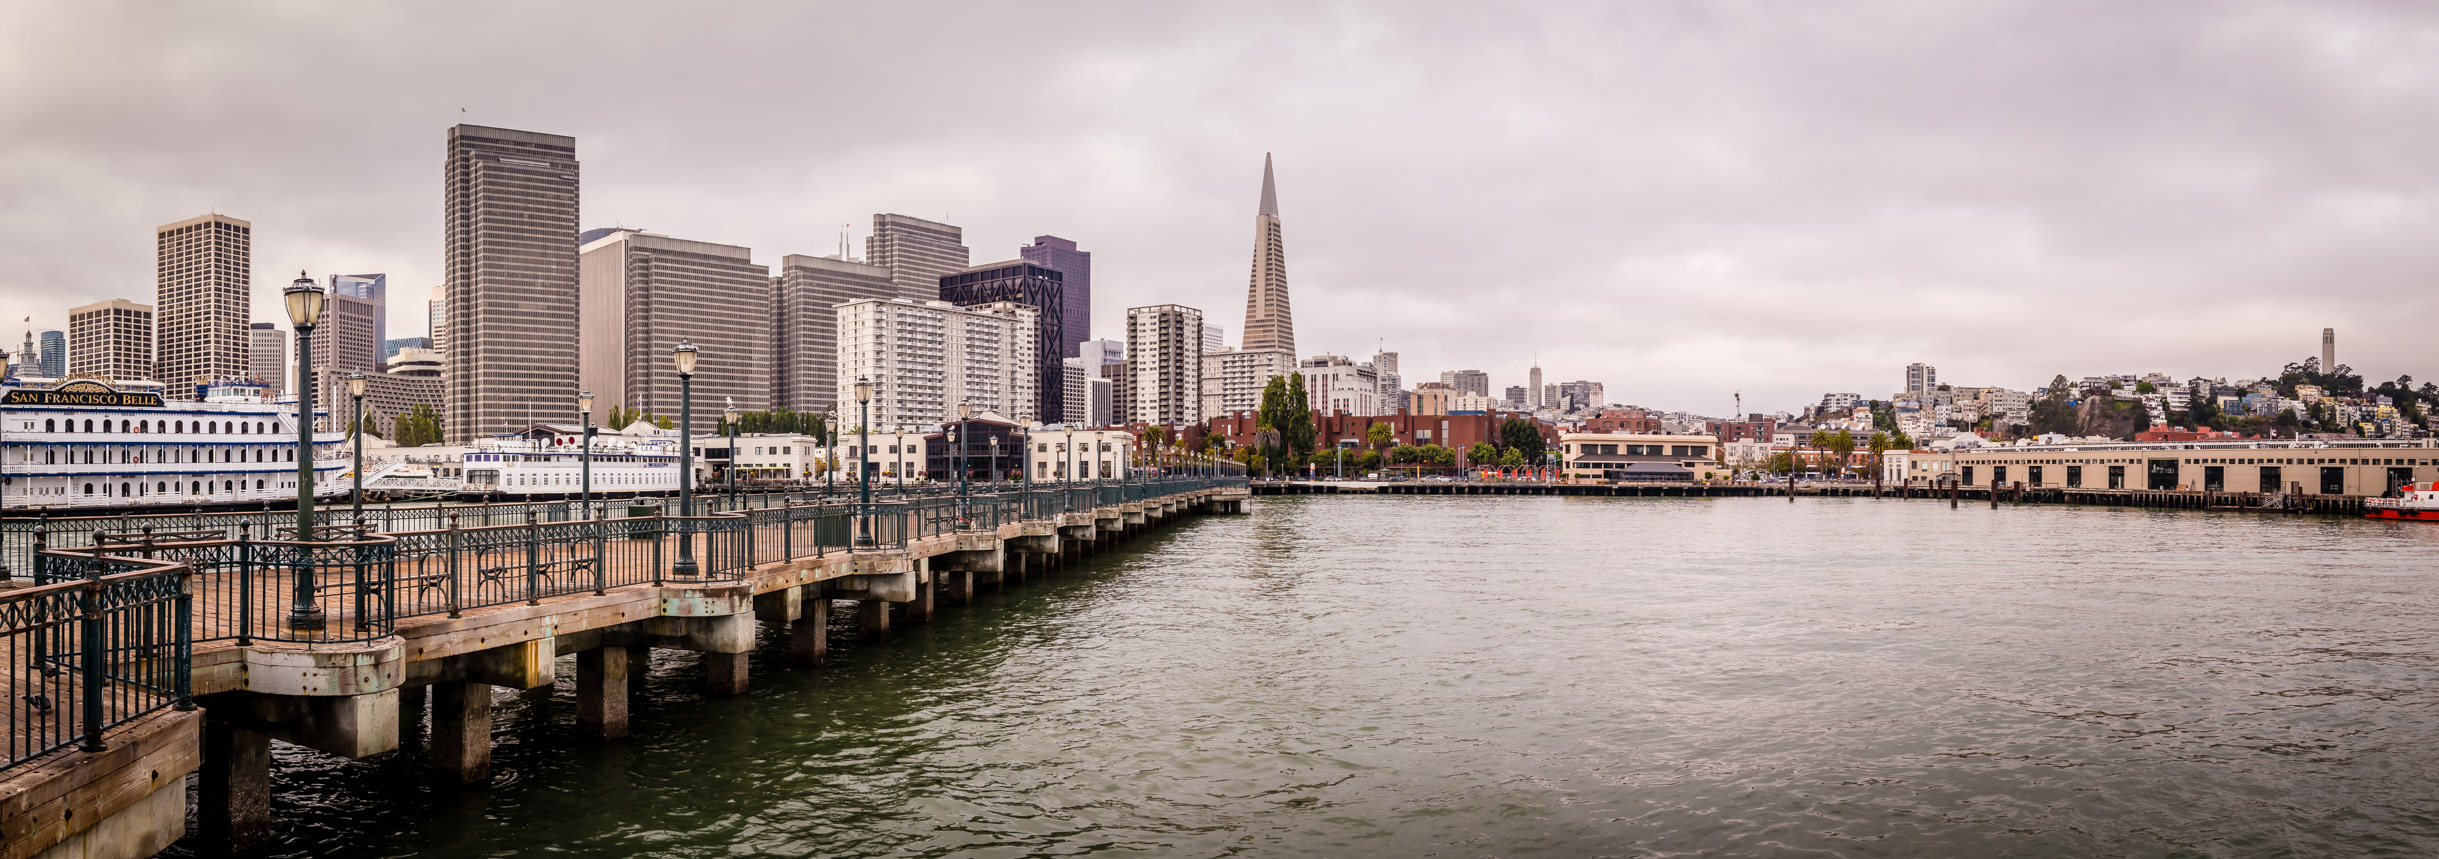 A panoramic view of San Francisco's Financial District and Telegraph Hill on a cloudy day, as seen from Pier 7 along the Embarcadero.